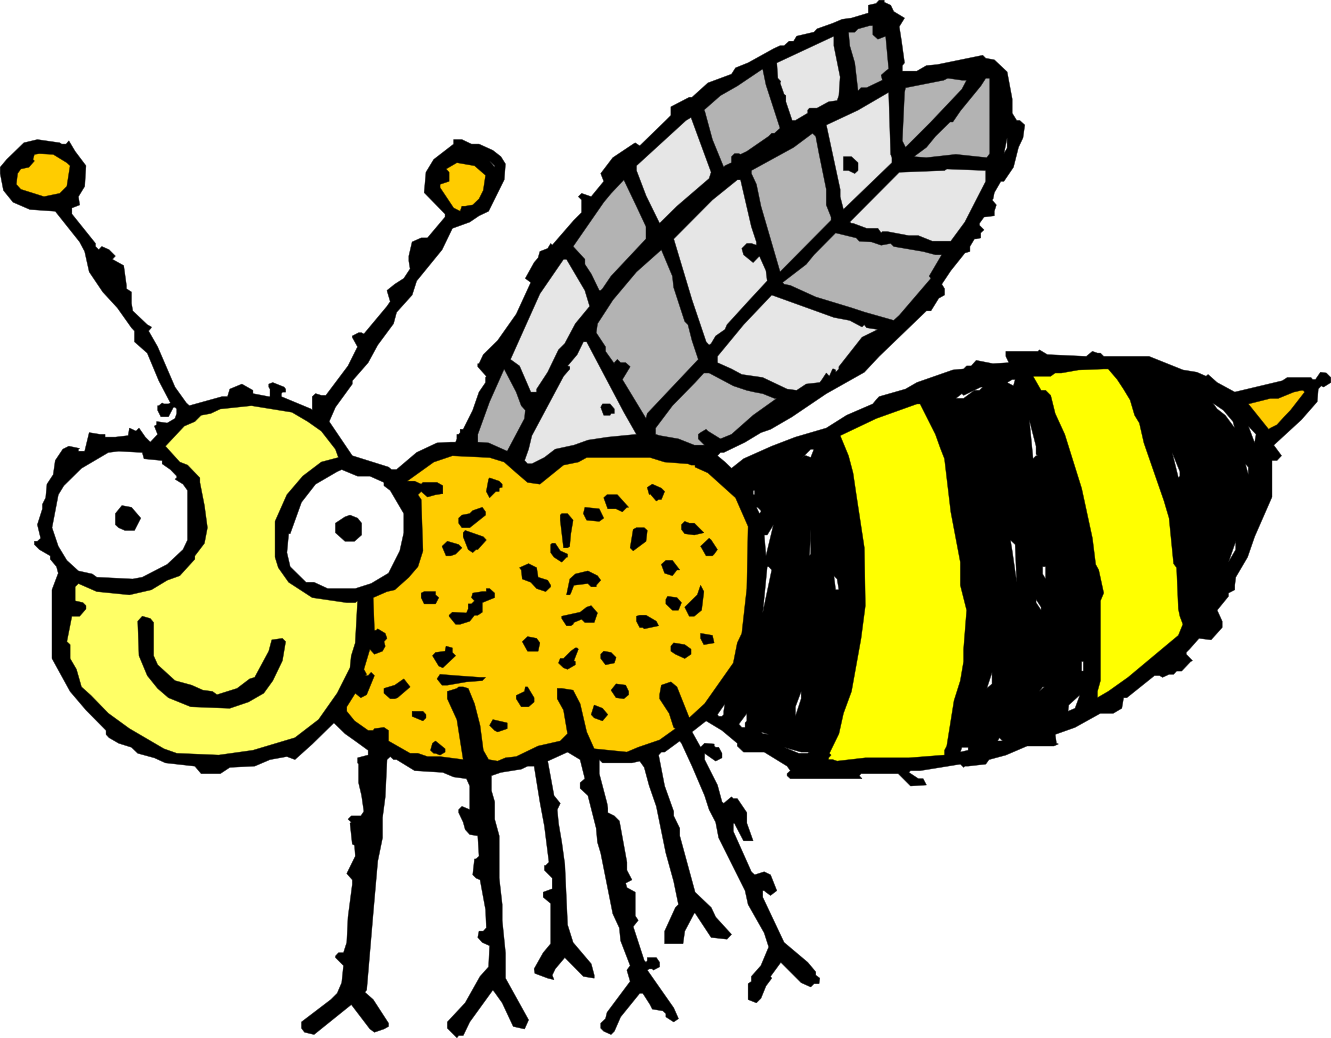 Wasp clipart #15, Download drawings